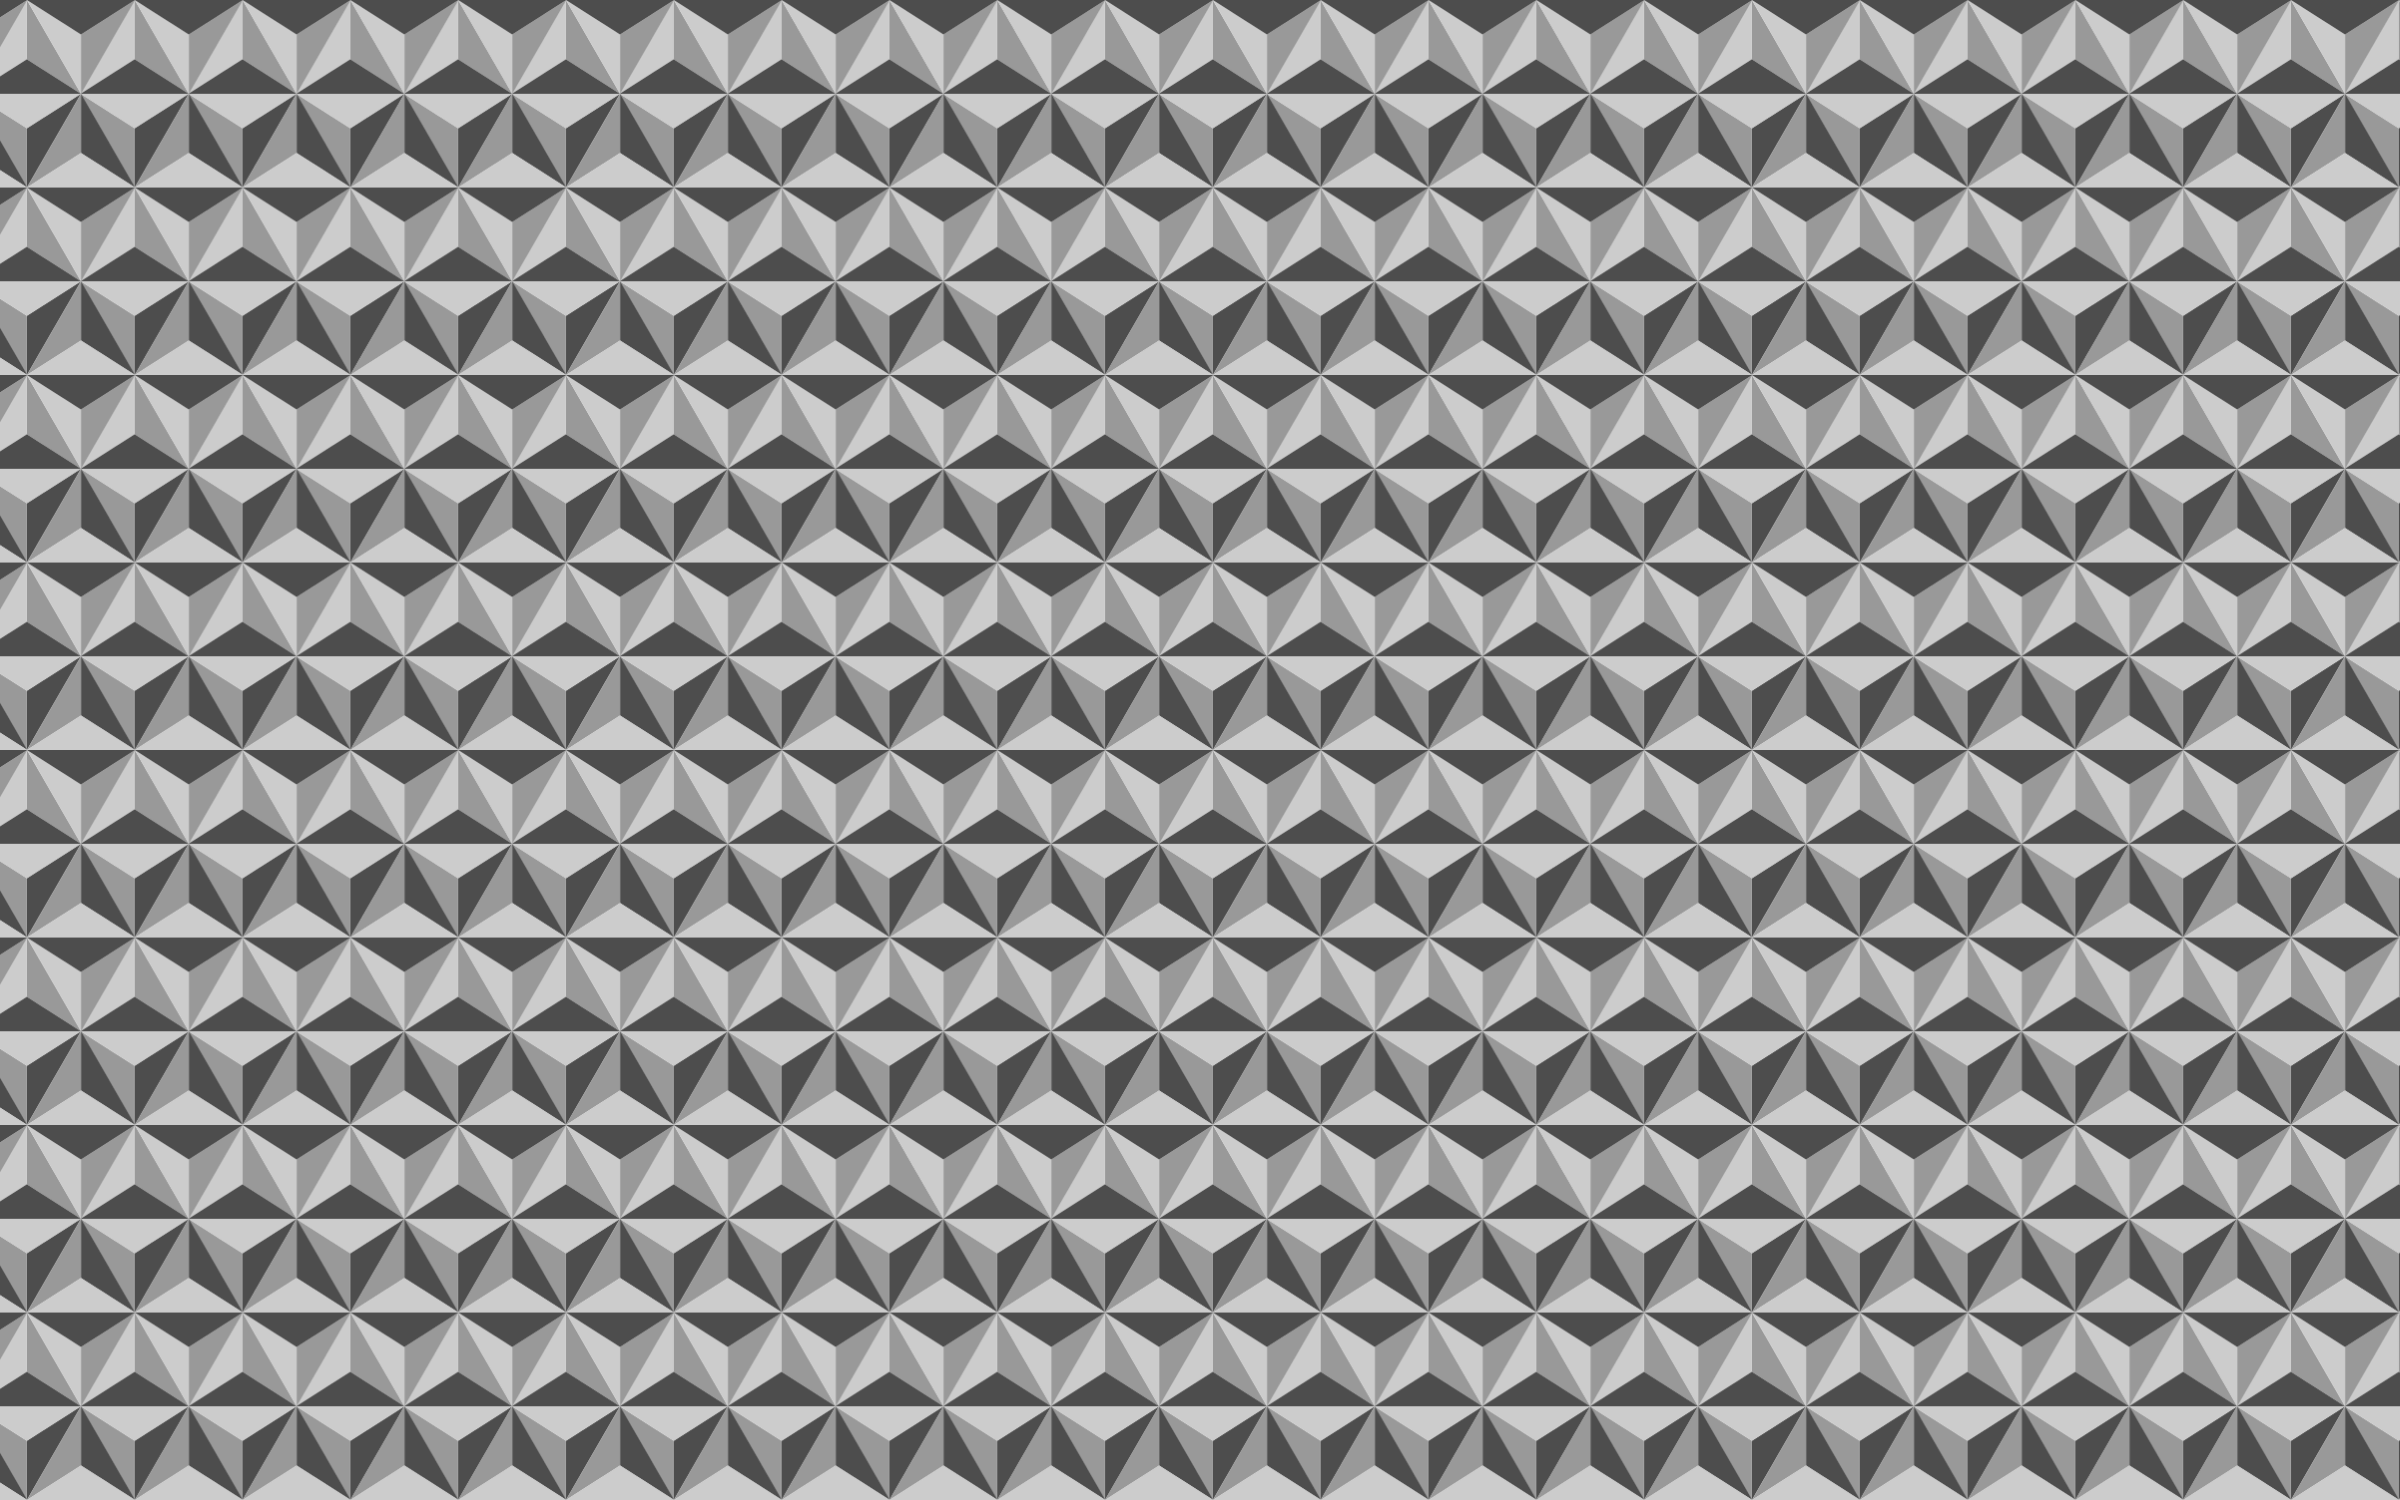 Seamless Grayscale Triangular Pattern by GDJ